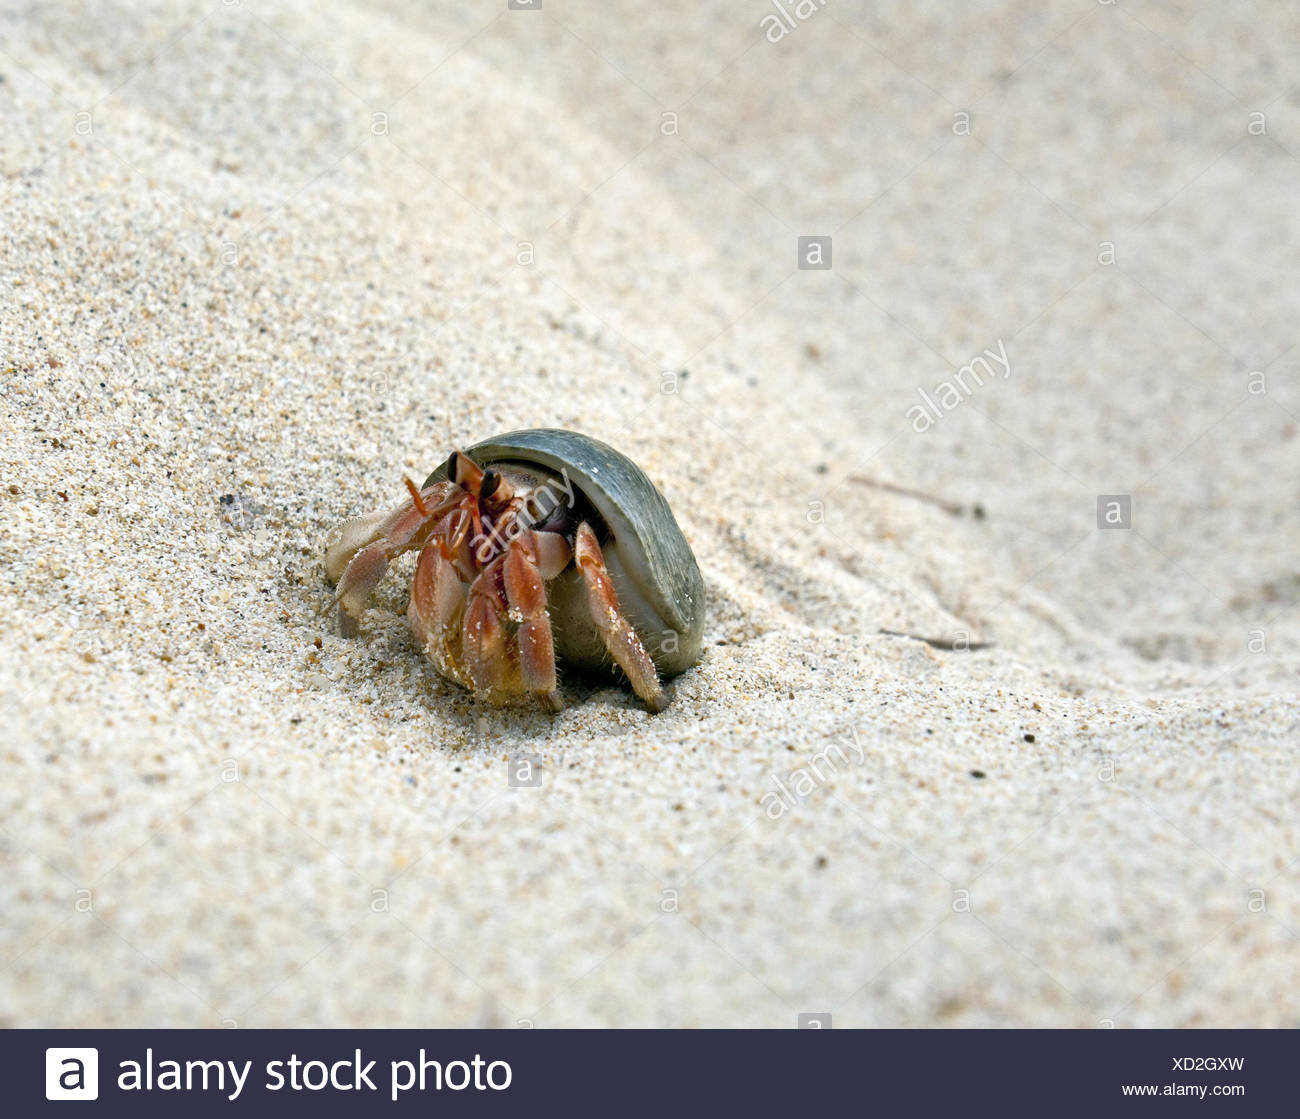 Beach, hermit crab, Asia, Thailand, outside, fauna, cancer, crustaceans, South-East Asia, animal, shellfish, beach, sandy beach, - Stock Image